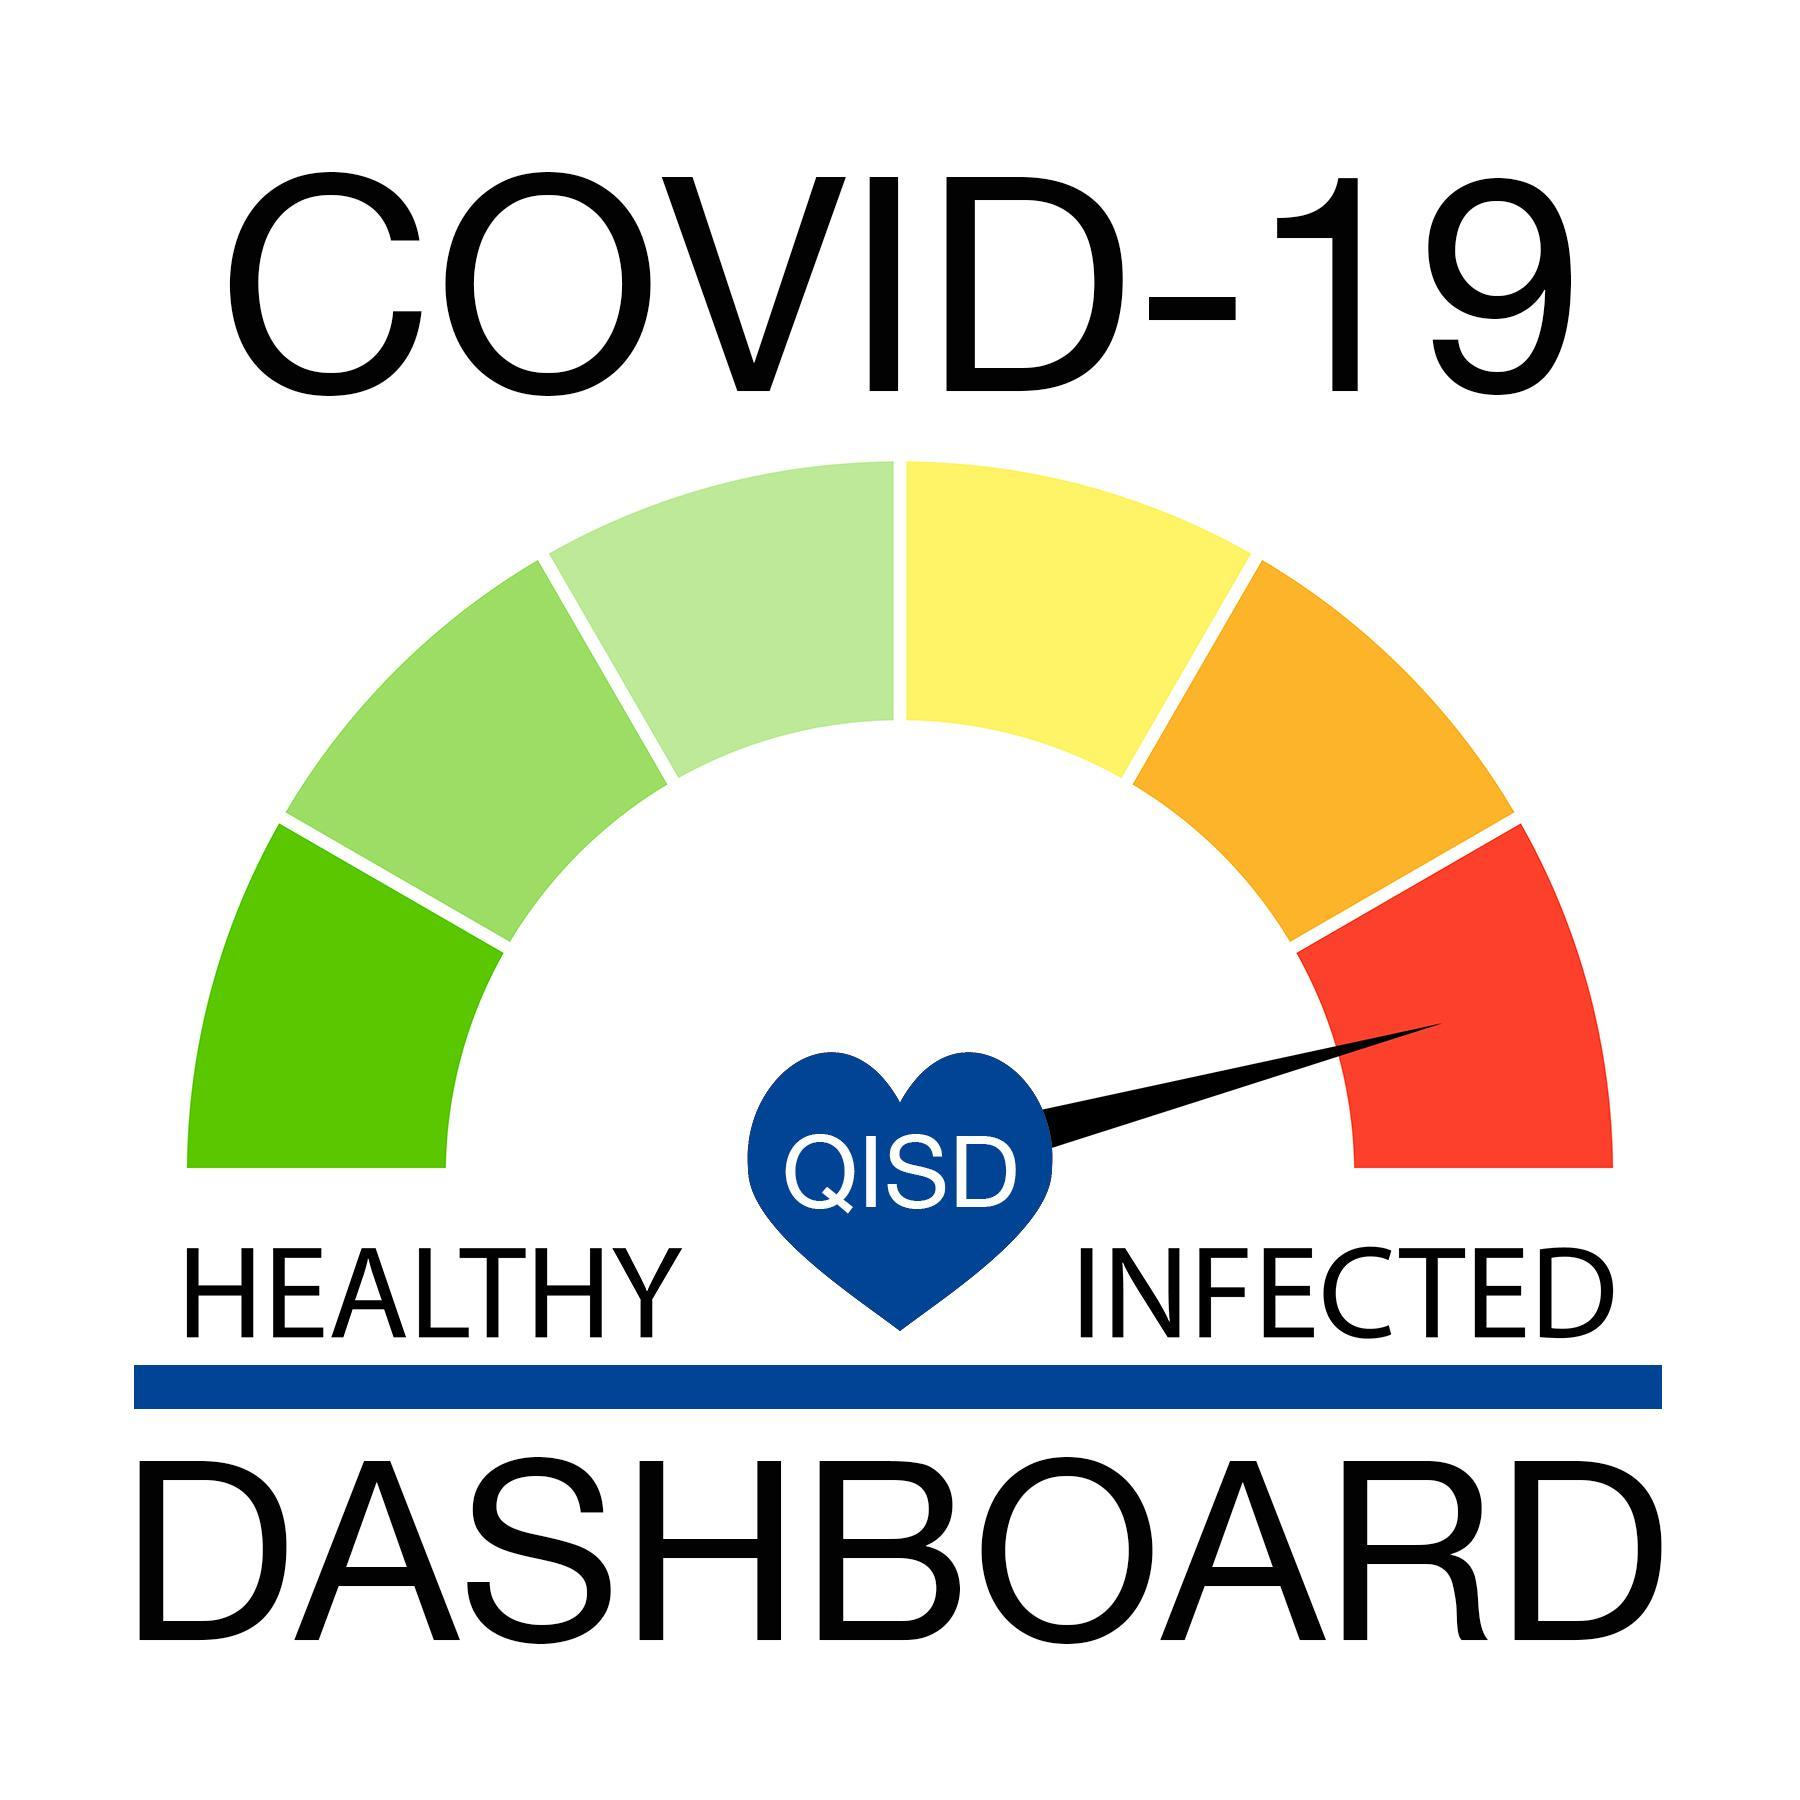 COVID-19 DASHBOARD, HEALTHY, INFECTED